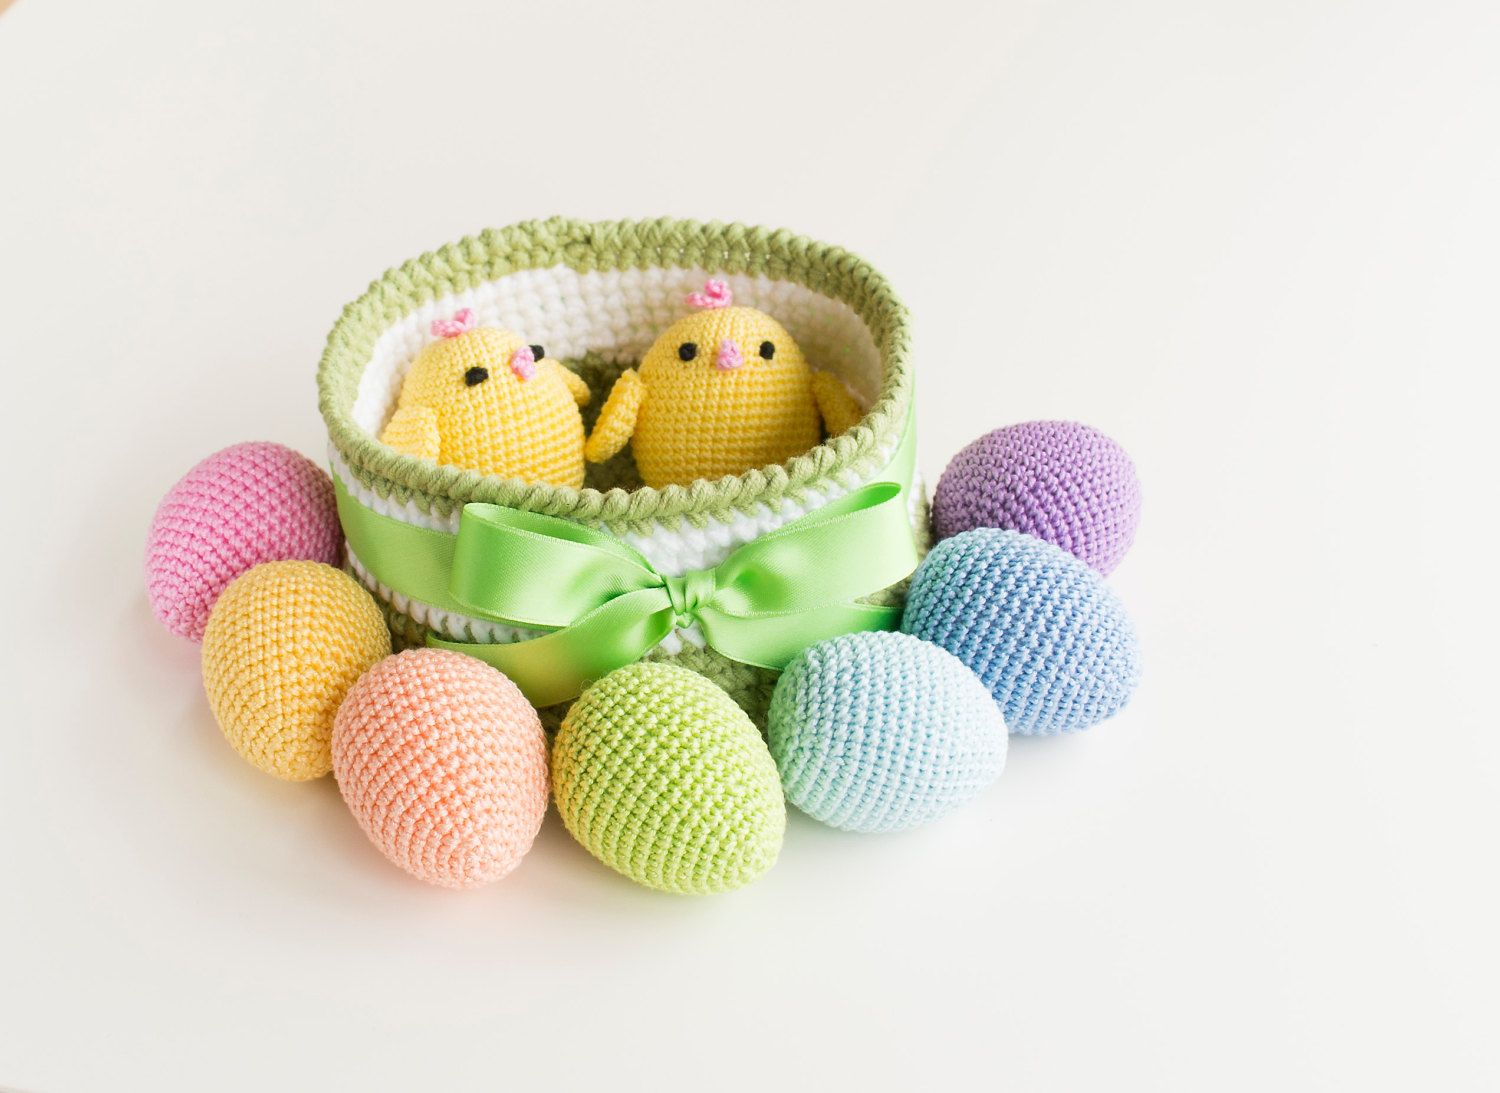 Crochet easter basket with 7 colorful eggs and 2 crochet chickens crochet easter basket with 7 colorful eggs and 2 crochet chickens babys first easter gift negle Image collections